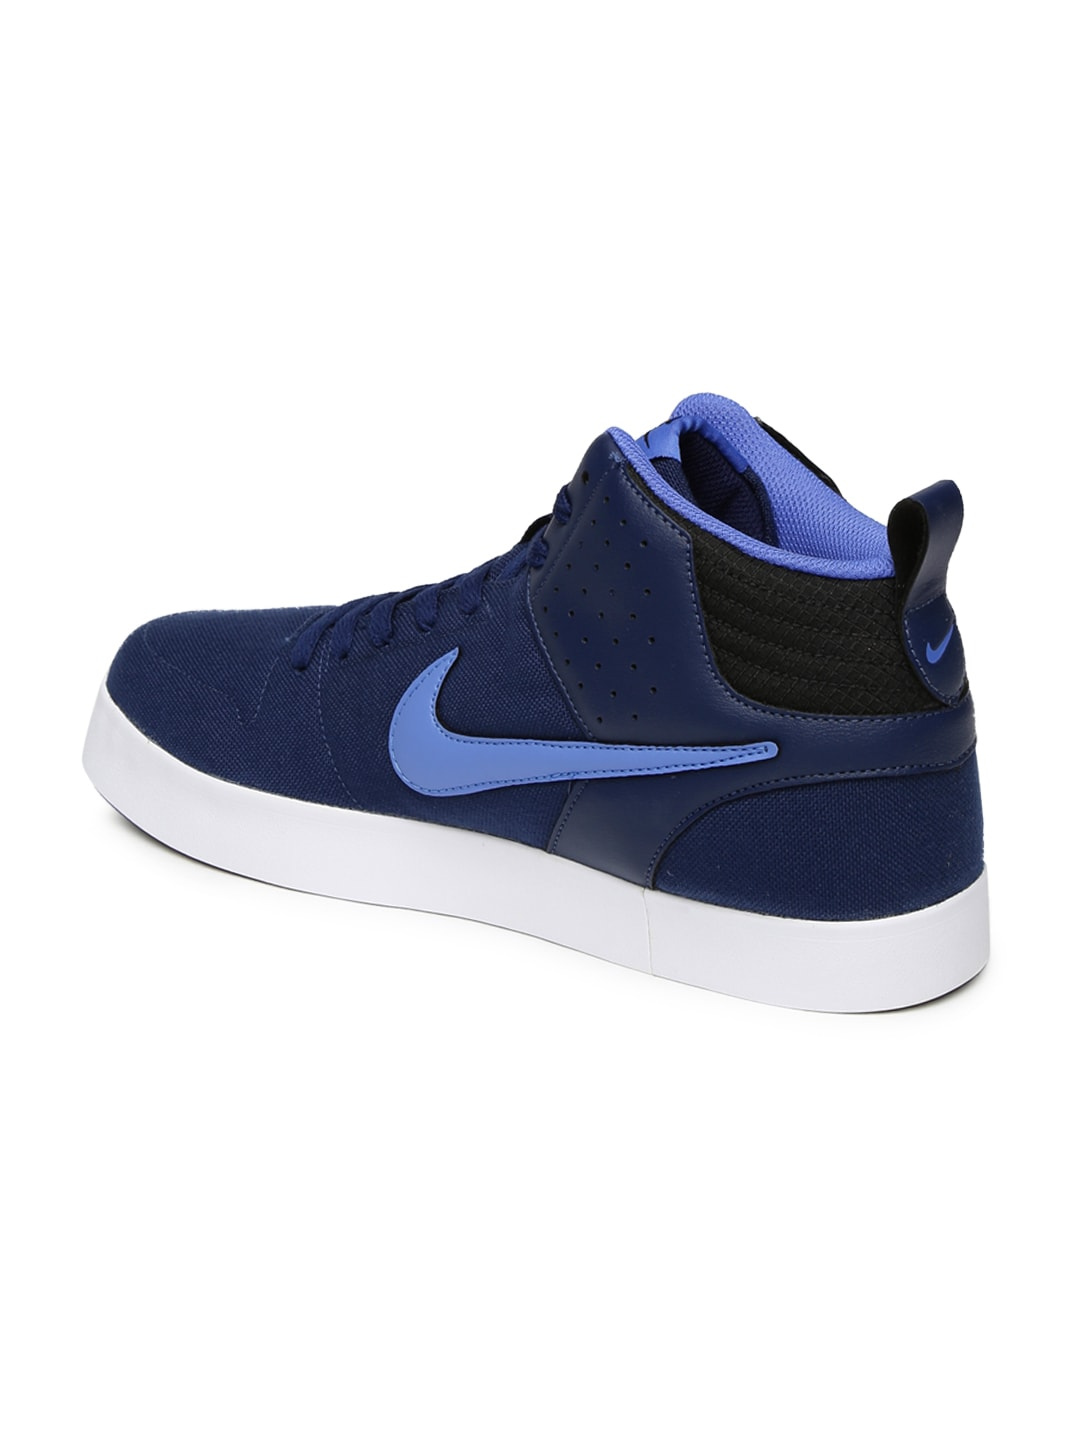 nike mens casual shoes india style guru fashion